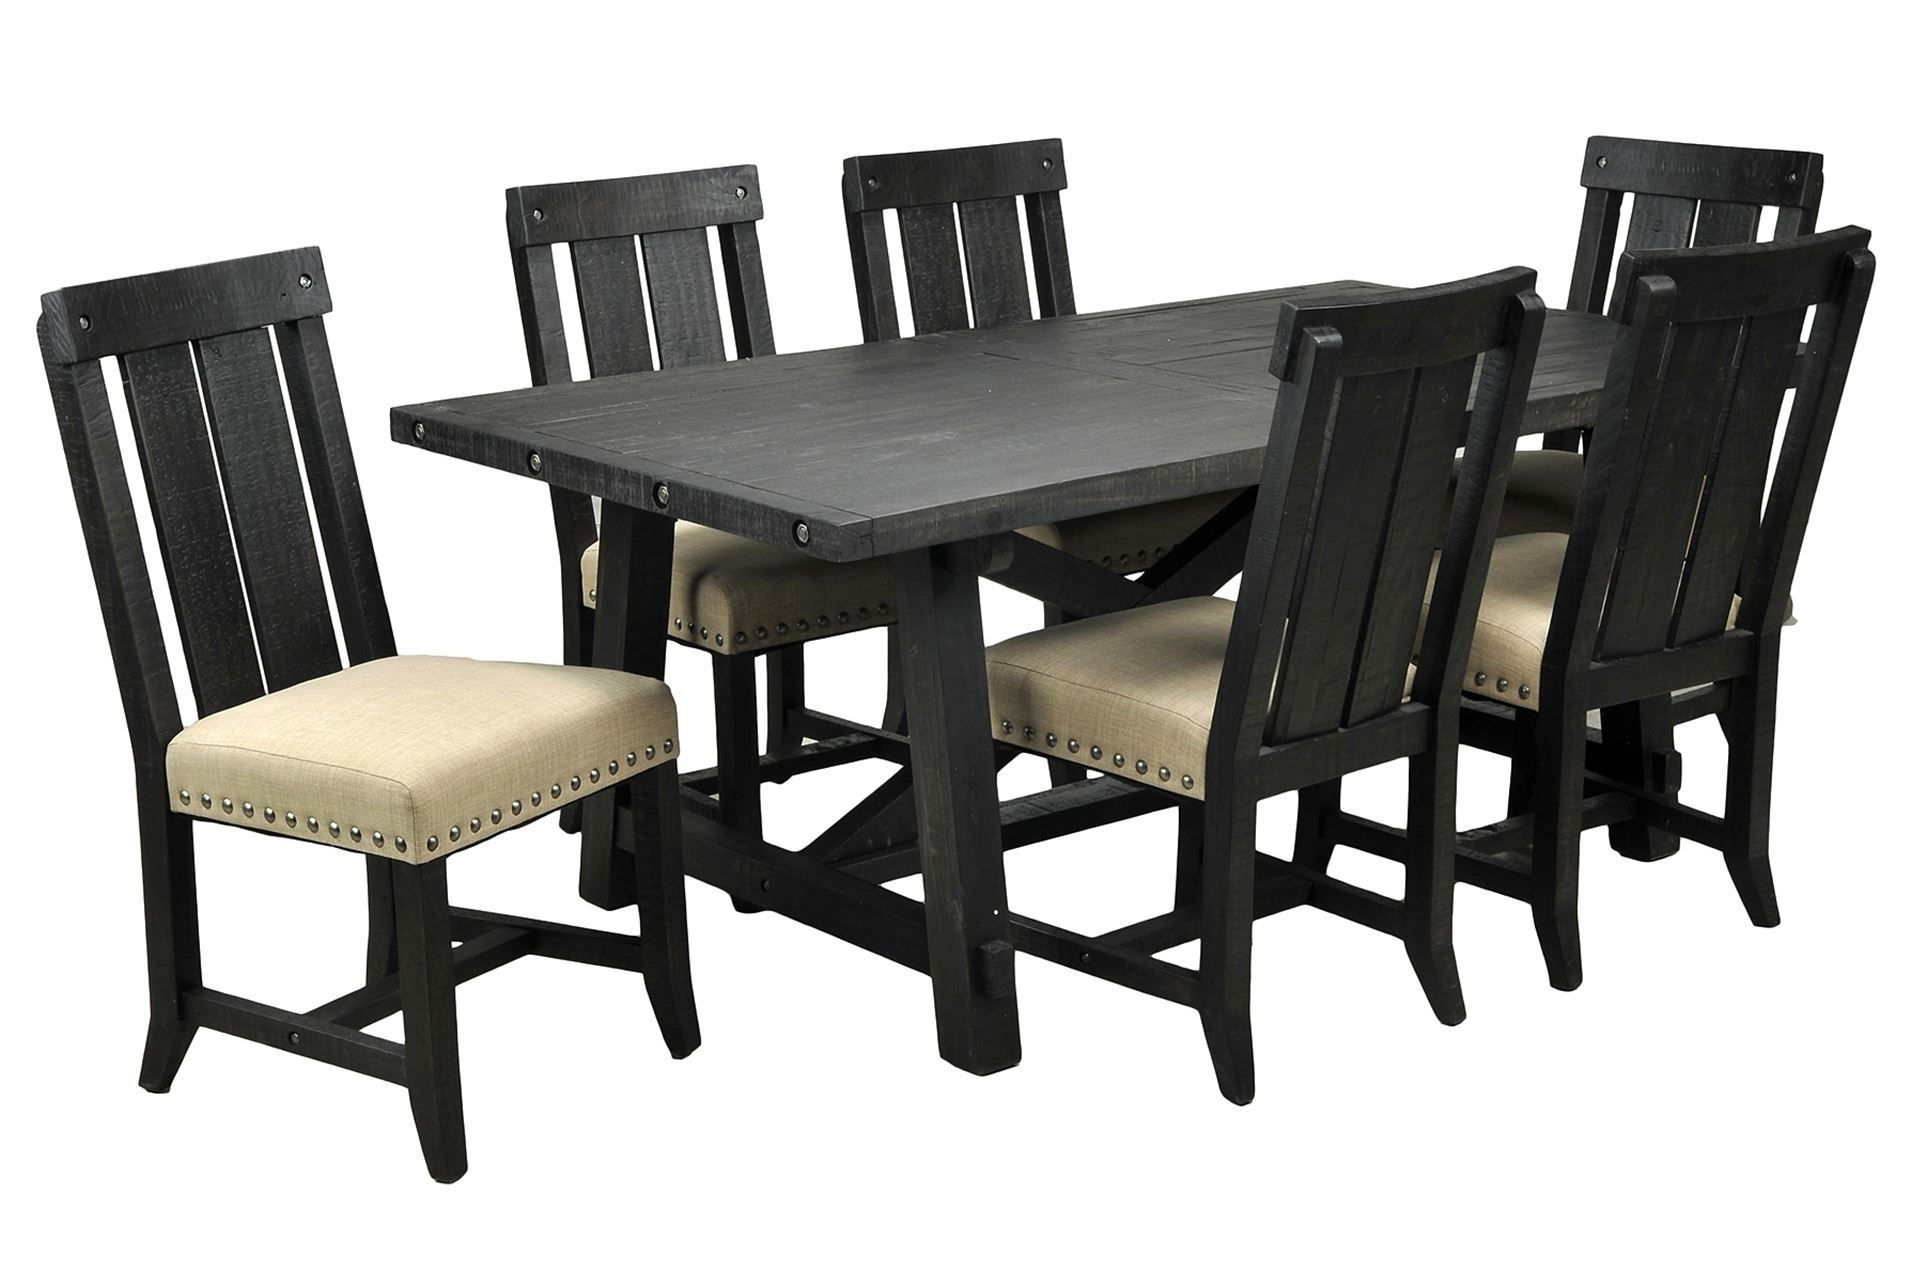 Jaxon 7 Piece Rectangle Dining Set W/wood Chairs | For The House I Inside Latest Jaxon Grey 7 Piece Rectangle Extension Dining Sets With Uph Chairs (Image 9 of 20)